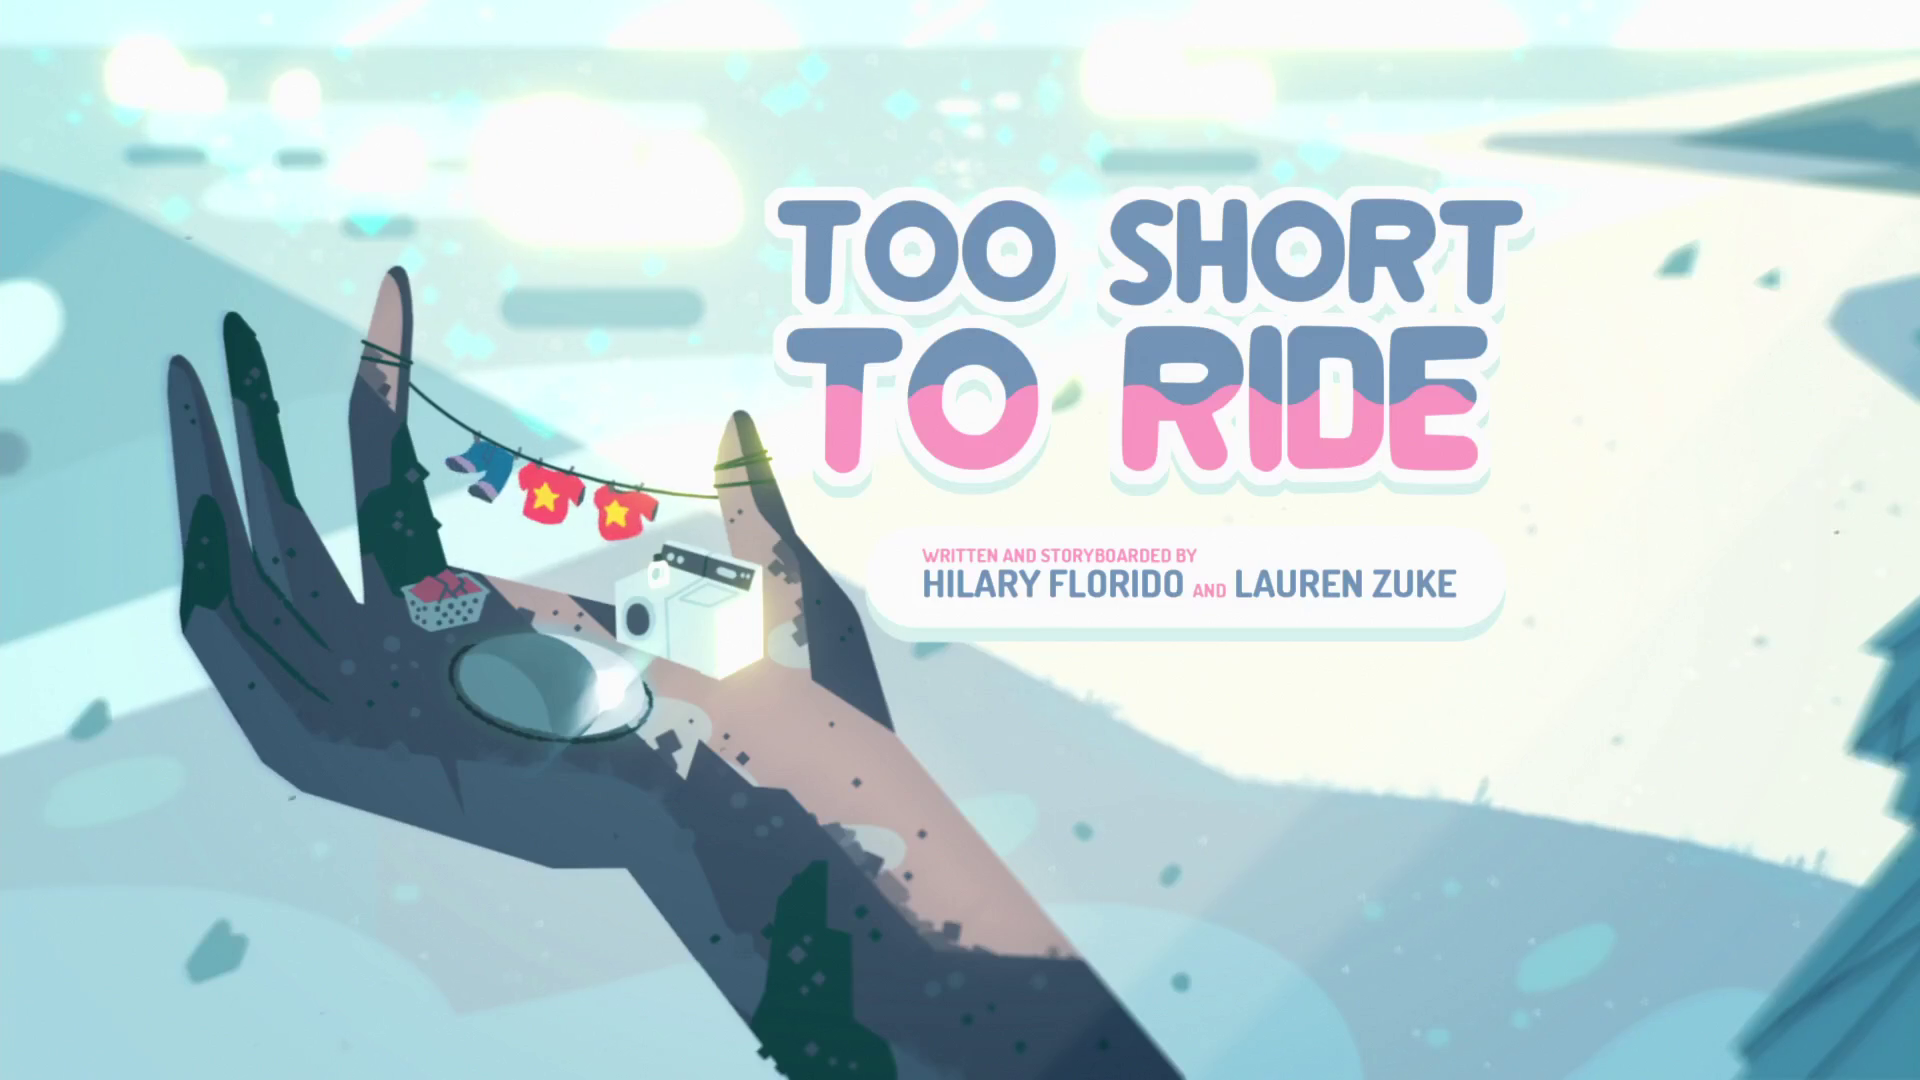 Too Short to Ride/Gallery